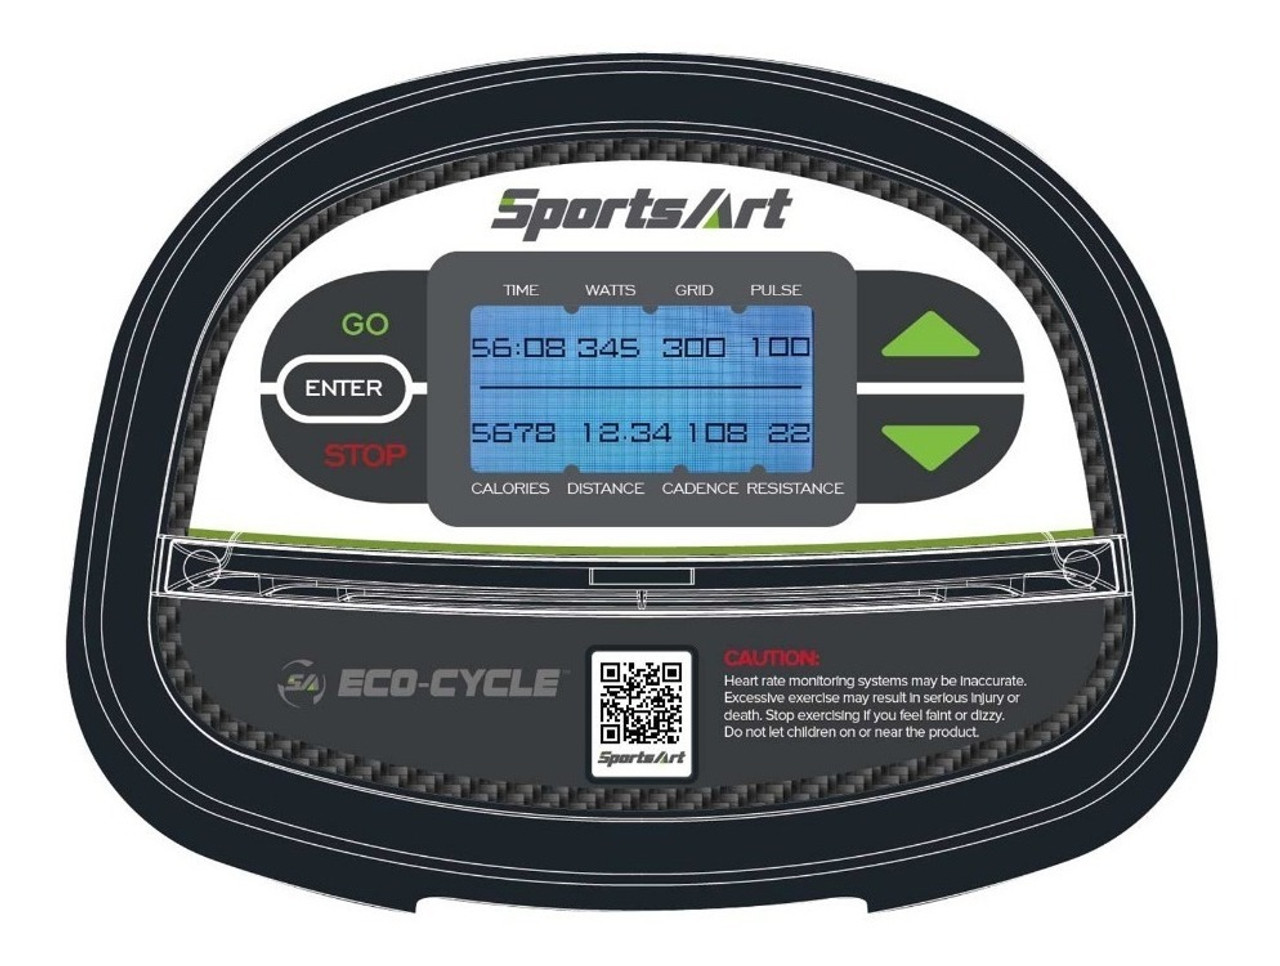 SportsArt G510 Indoor Cycle Eco Powr Console